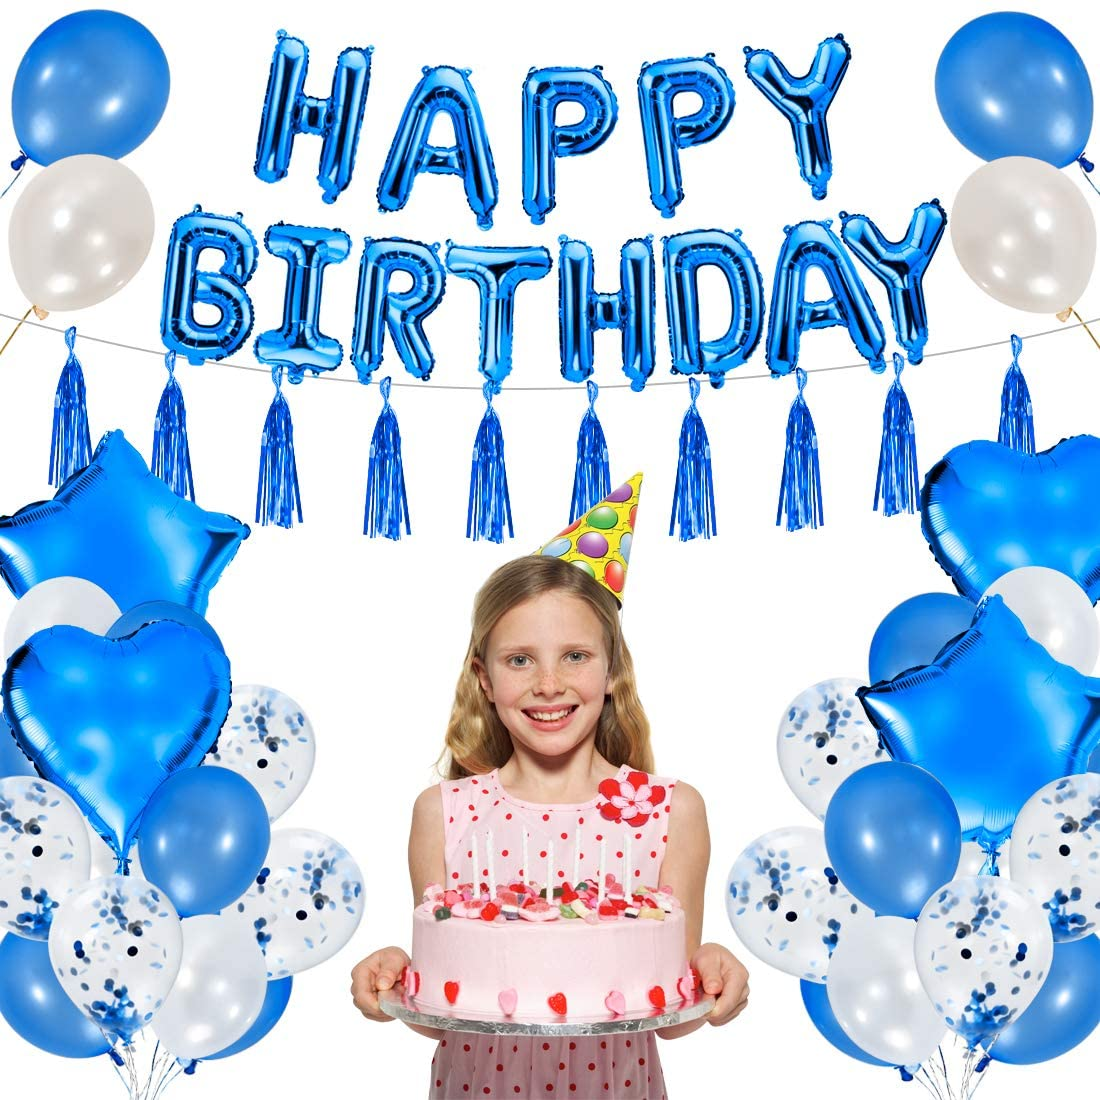 Happy Birthday Decorations - Royal Blue Party Supplies 56PCS - Latex Balloons, Confetti Balloons, Star and Heart Foil Balloon, Tassels, Banner, Pump - Party Decorations for Boy Girl Women Men